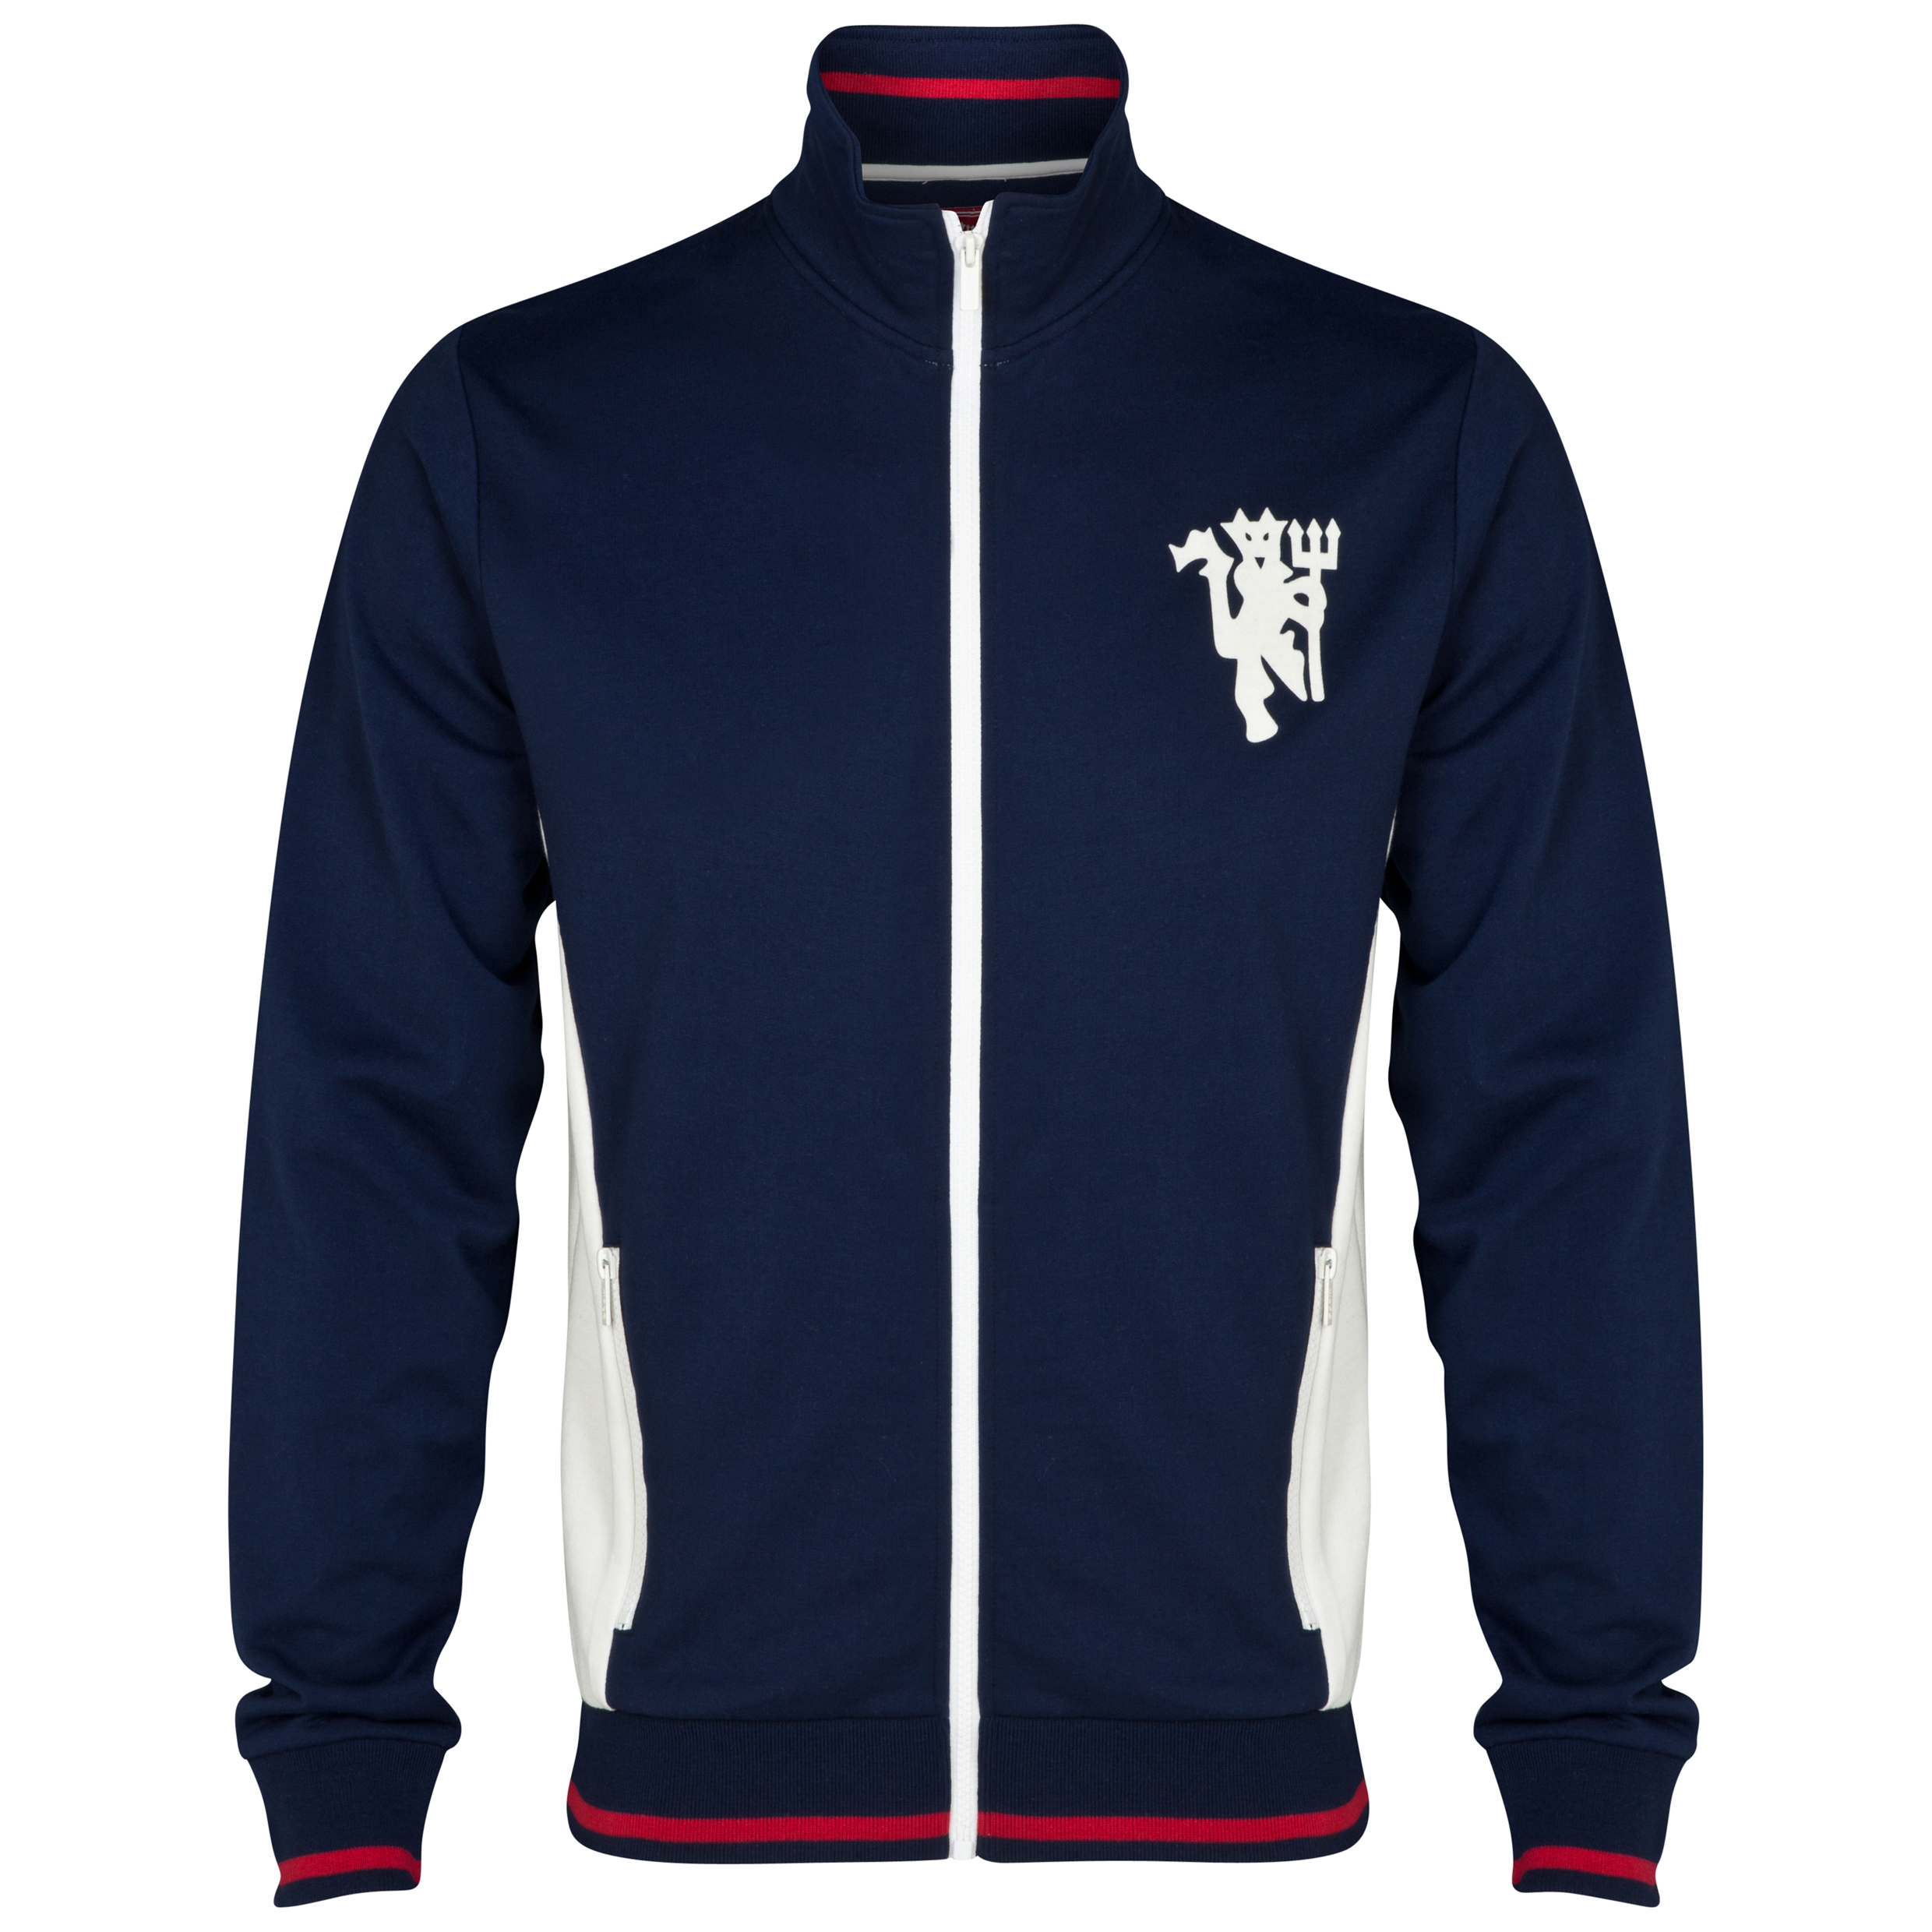 Manchester United Heritage Retro Zip Through Jacket - Mens Navy